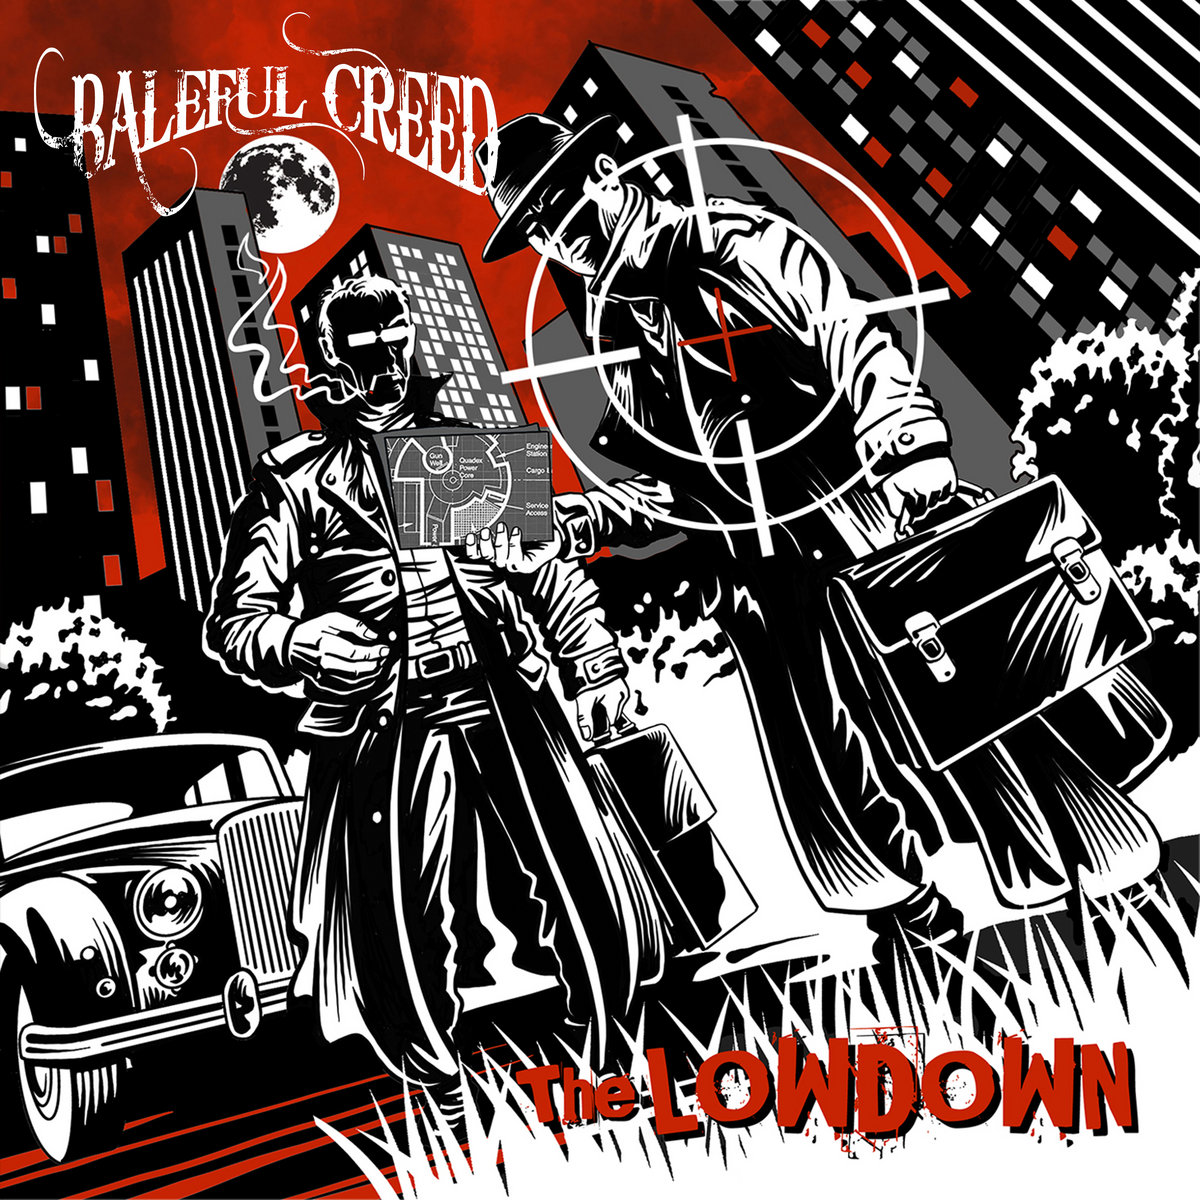 baleful creed the lowdown